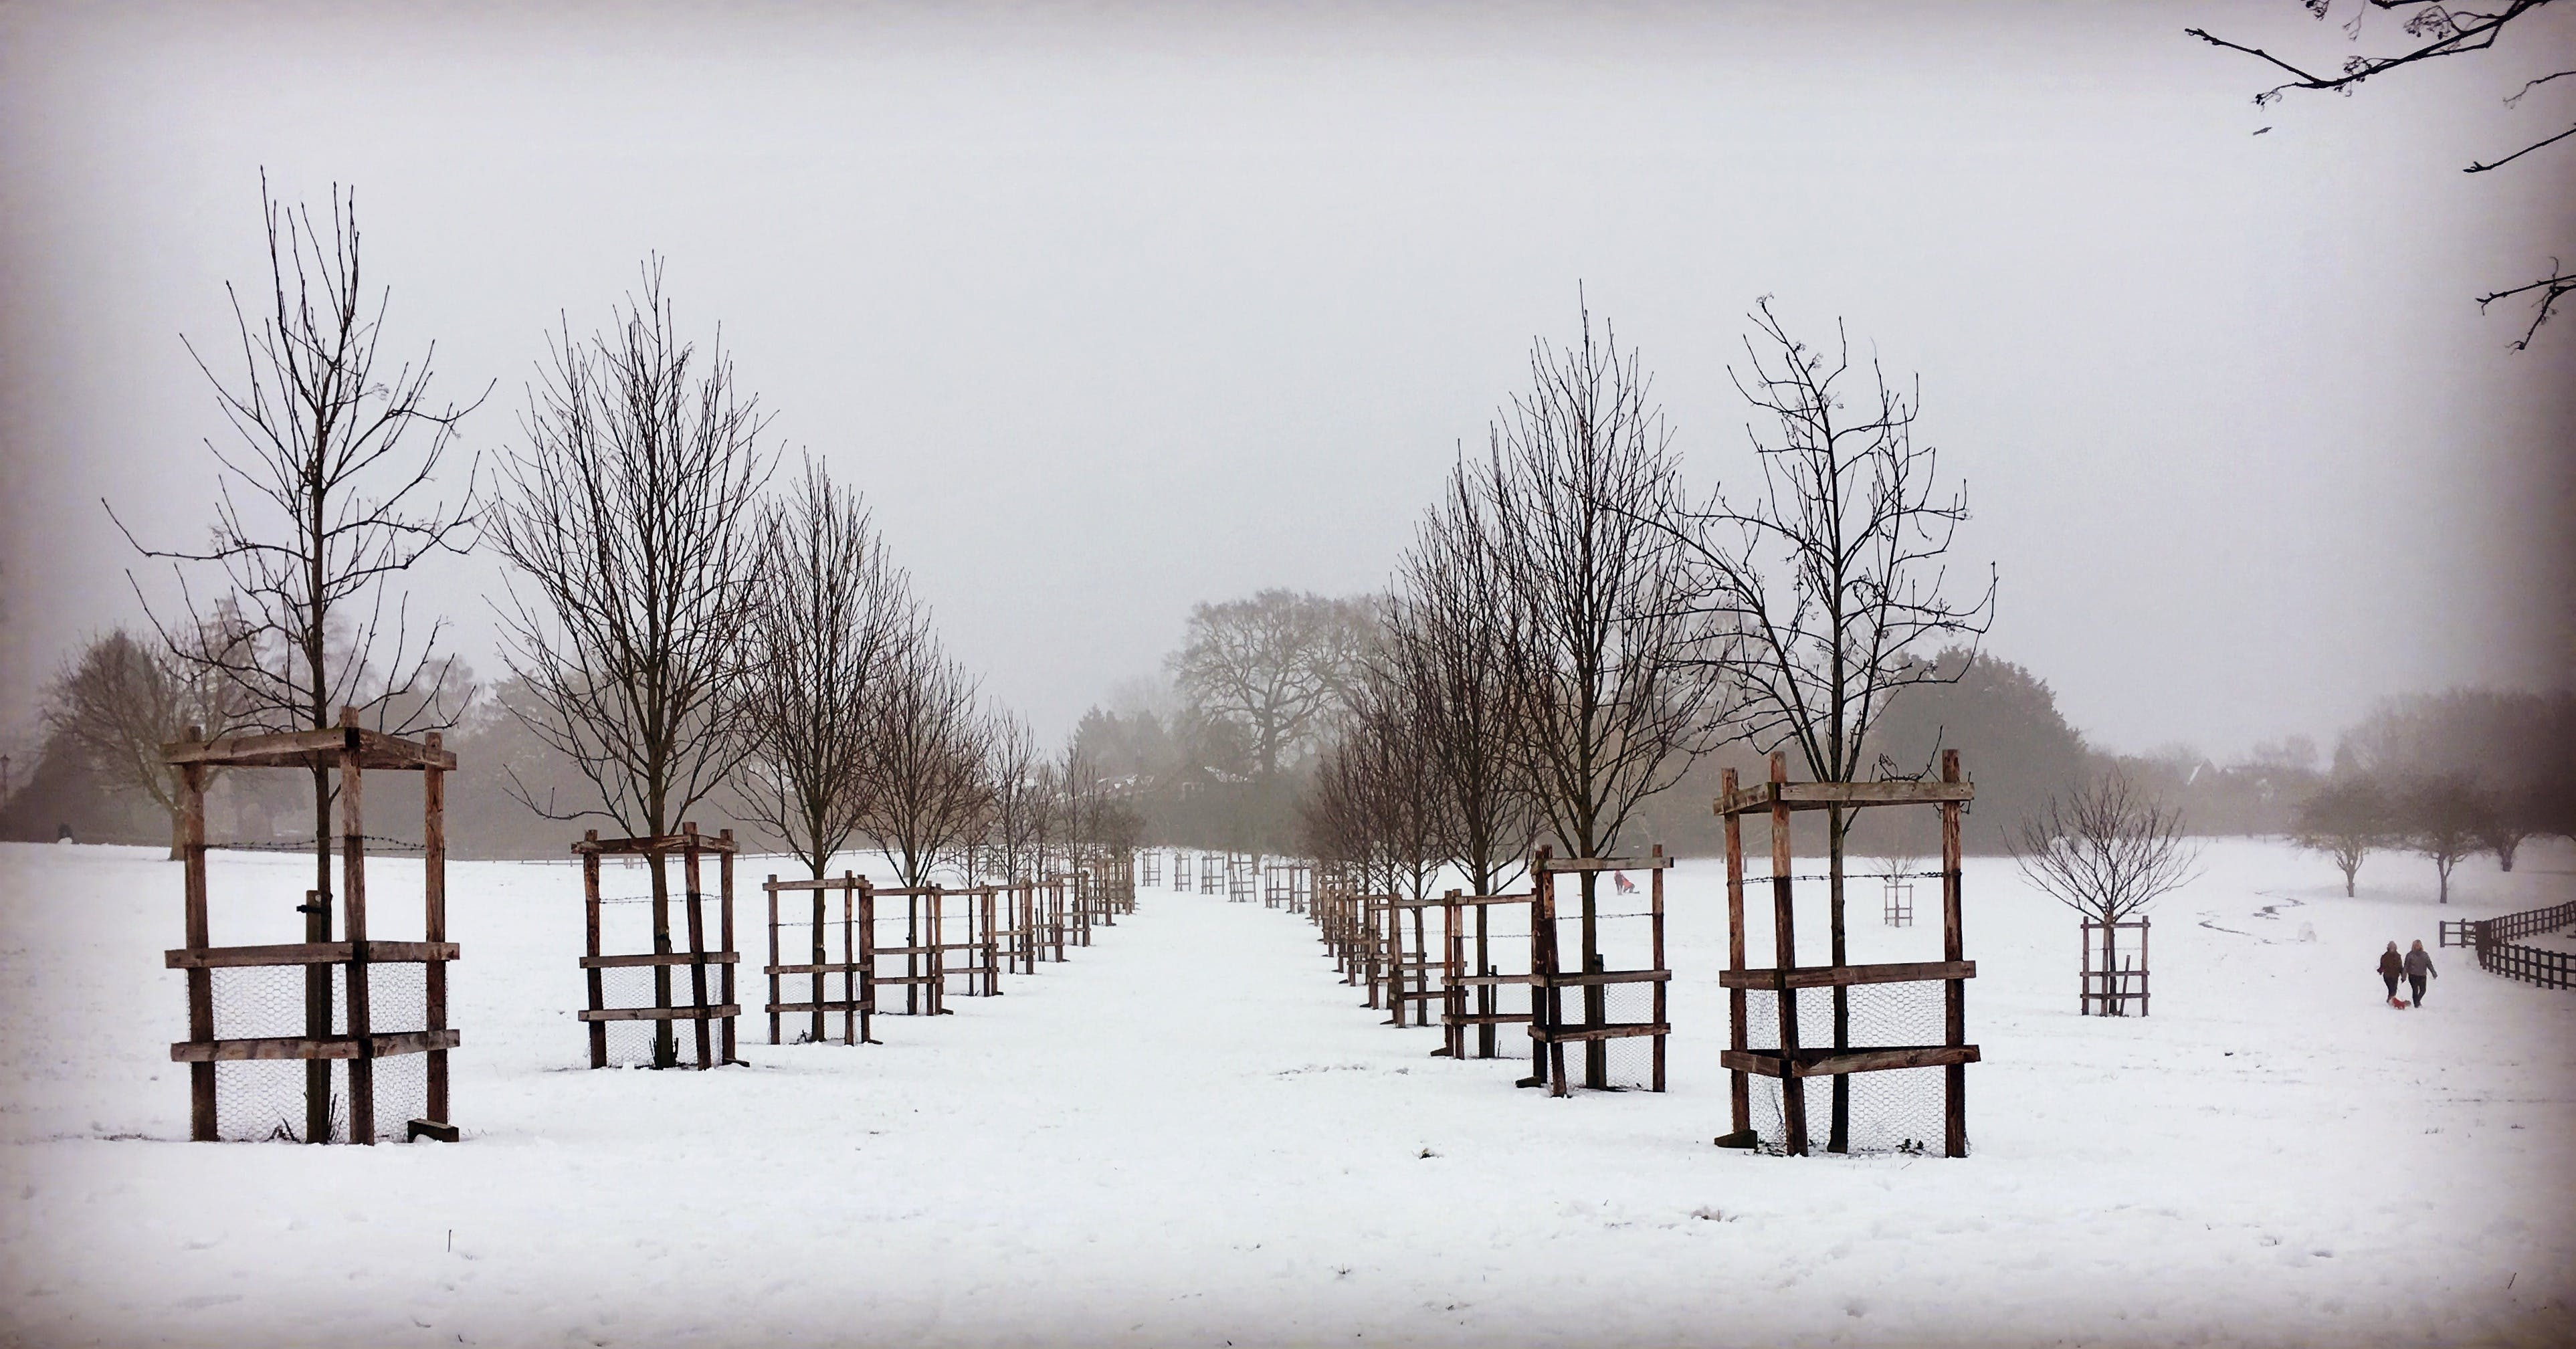 Free stock photo of cold, Snow covered park, snowy, winter